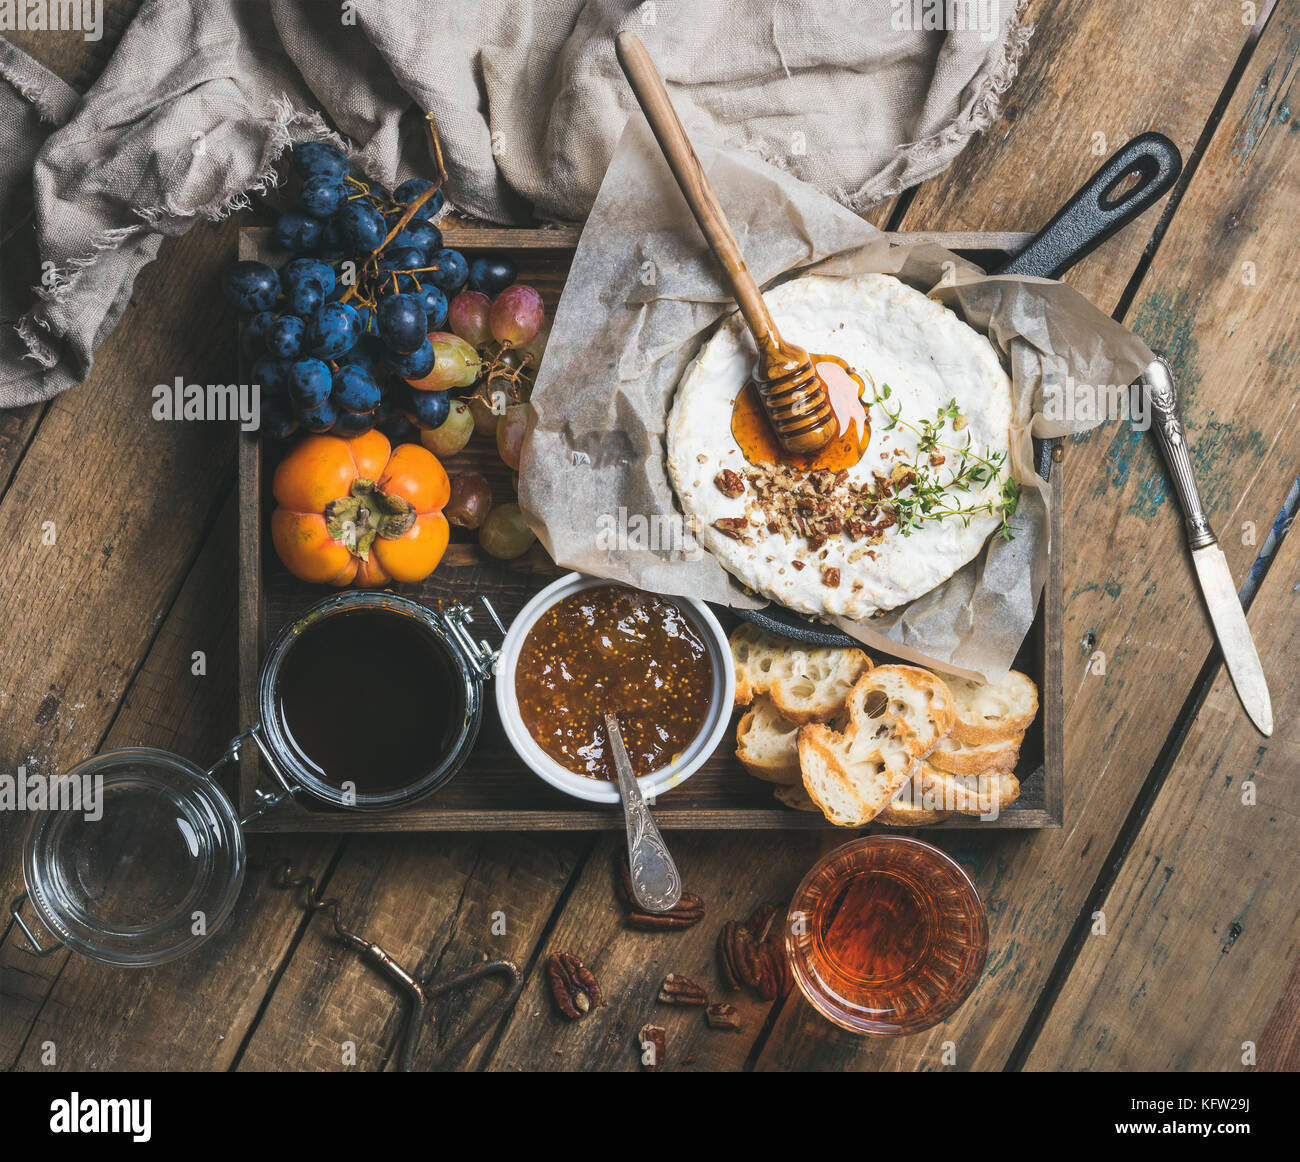 Camambert with honey, nuts, herbs, fruits and rose wine - Stock Image